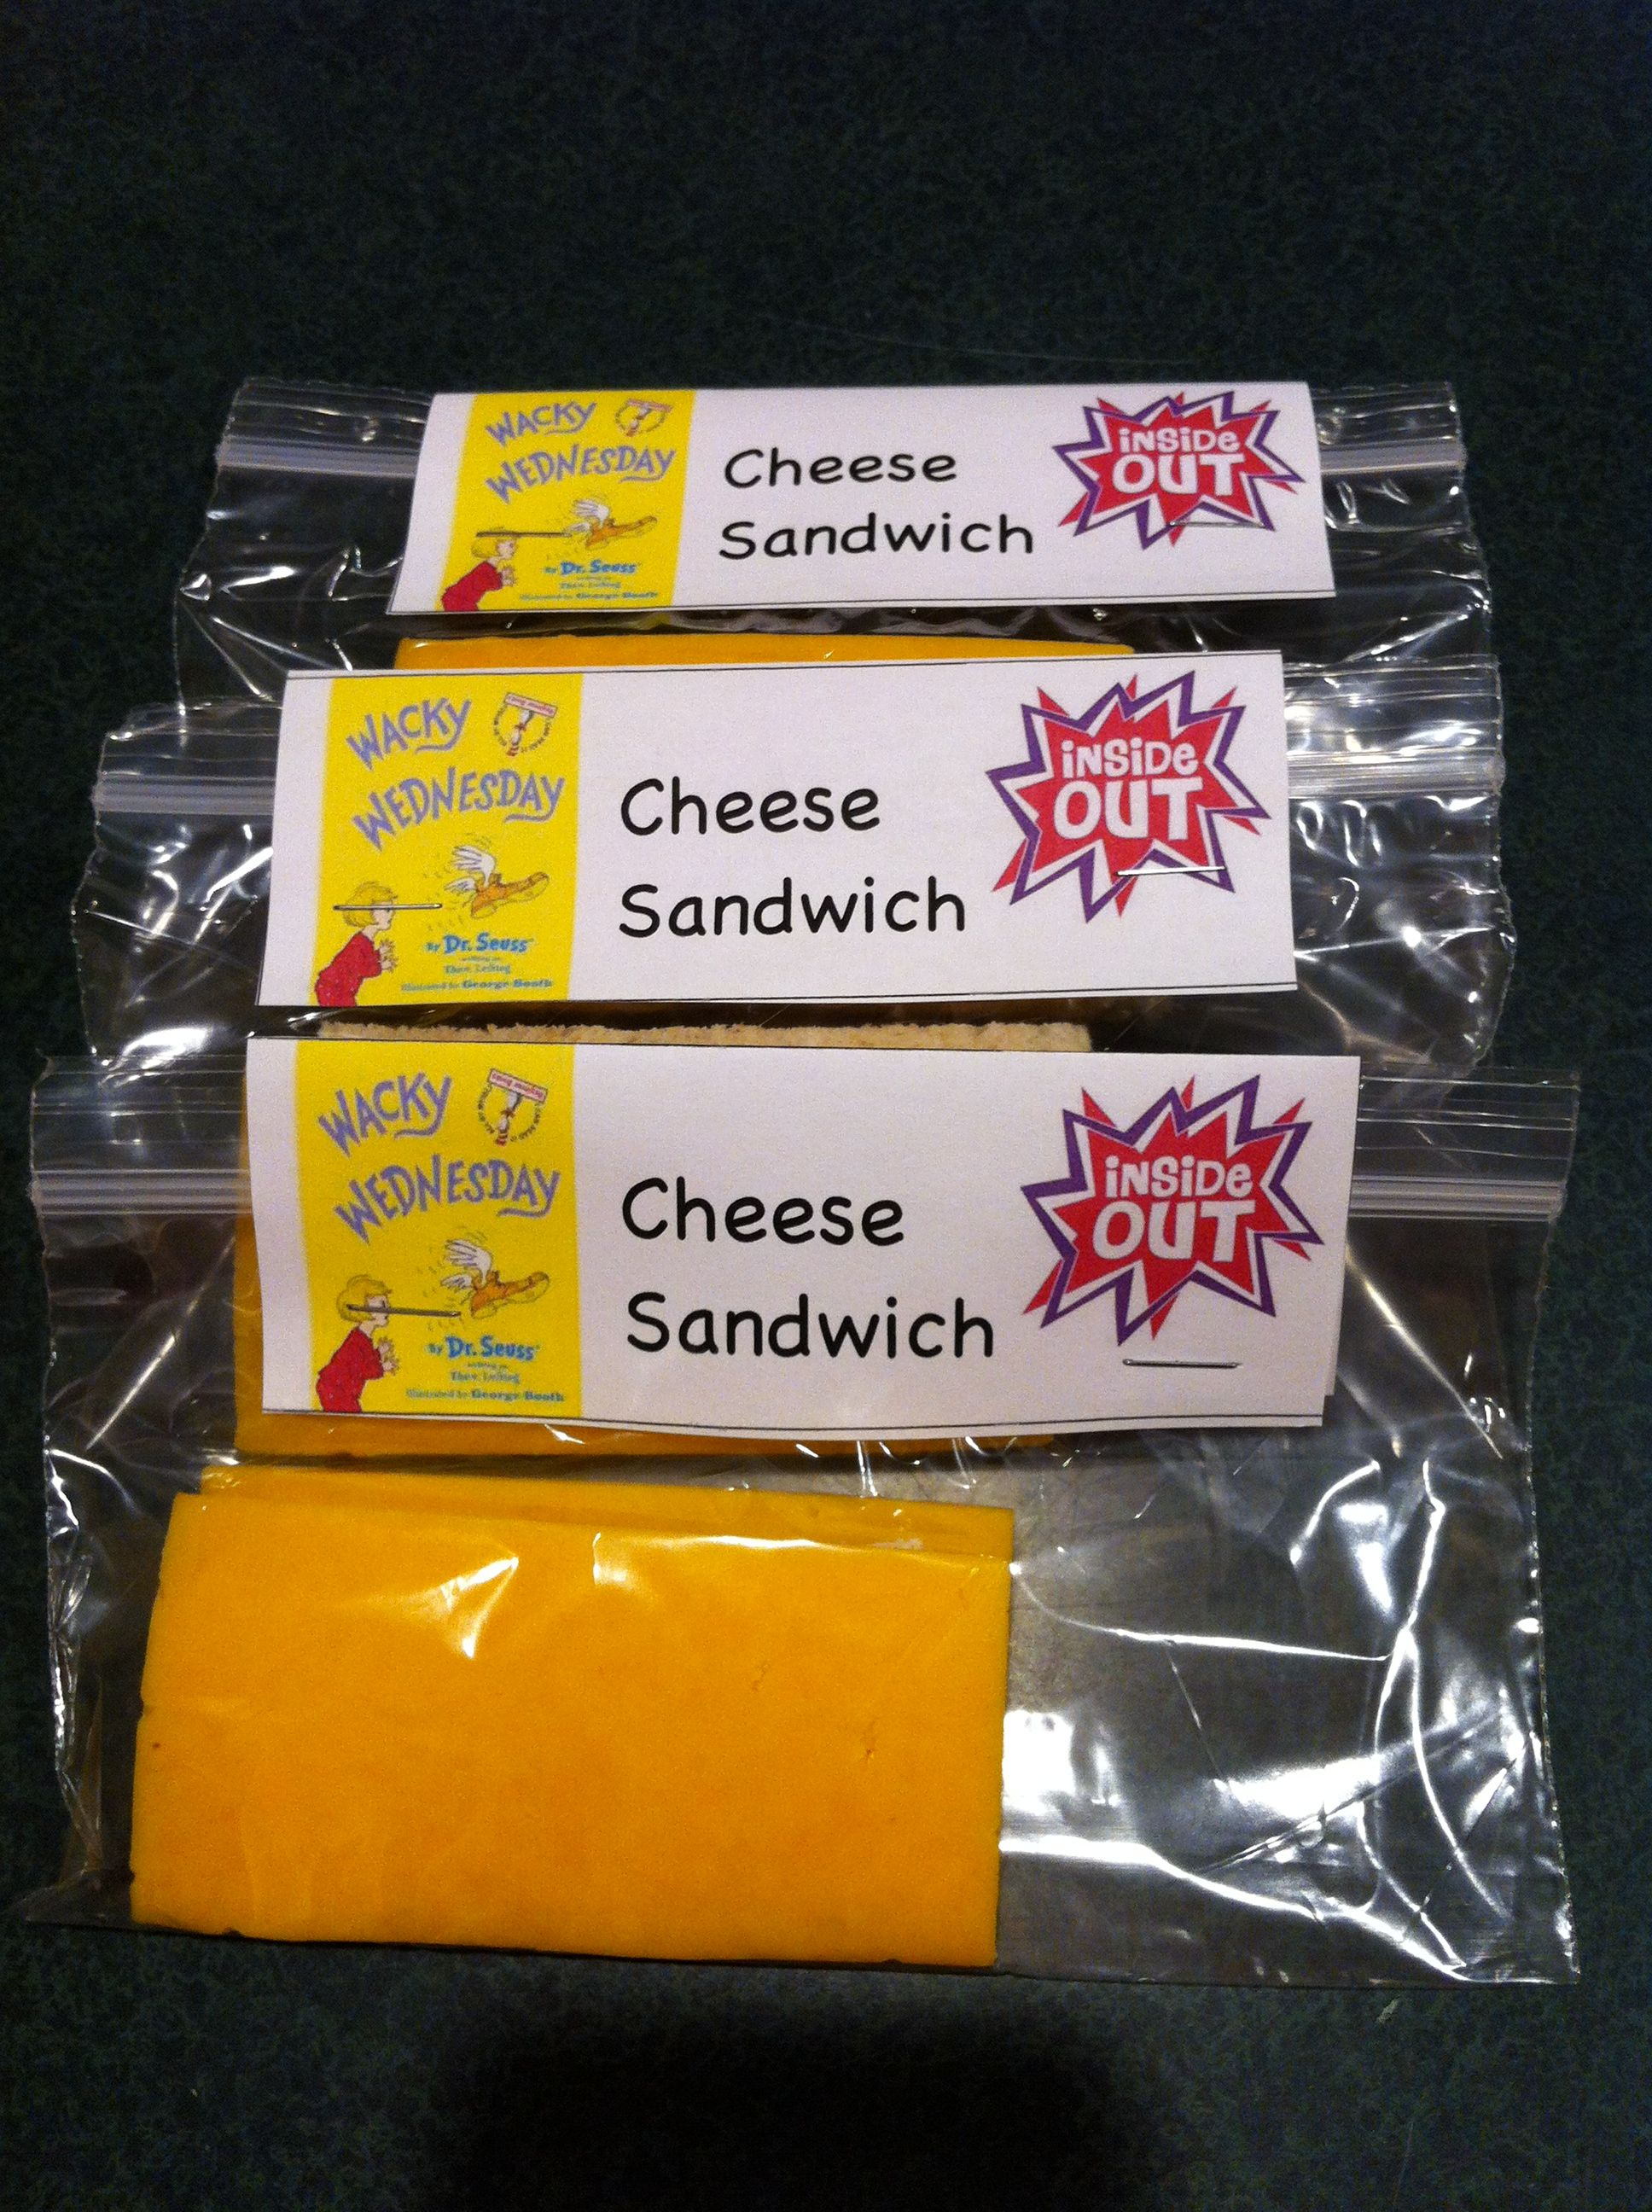 Dr Seuss Wacky Wednesday Snack Inside Out Cheese Sandwich Bread In Between 2 Slices Of Cheese